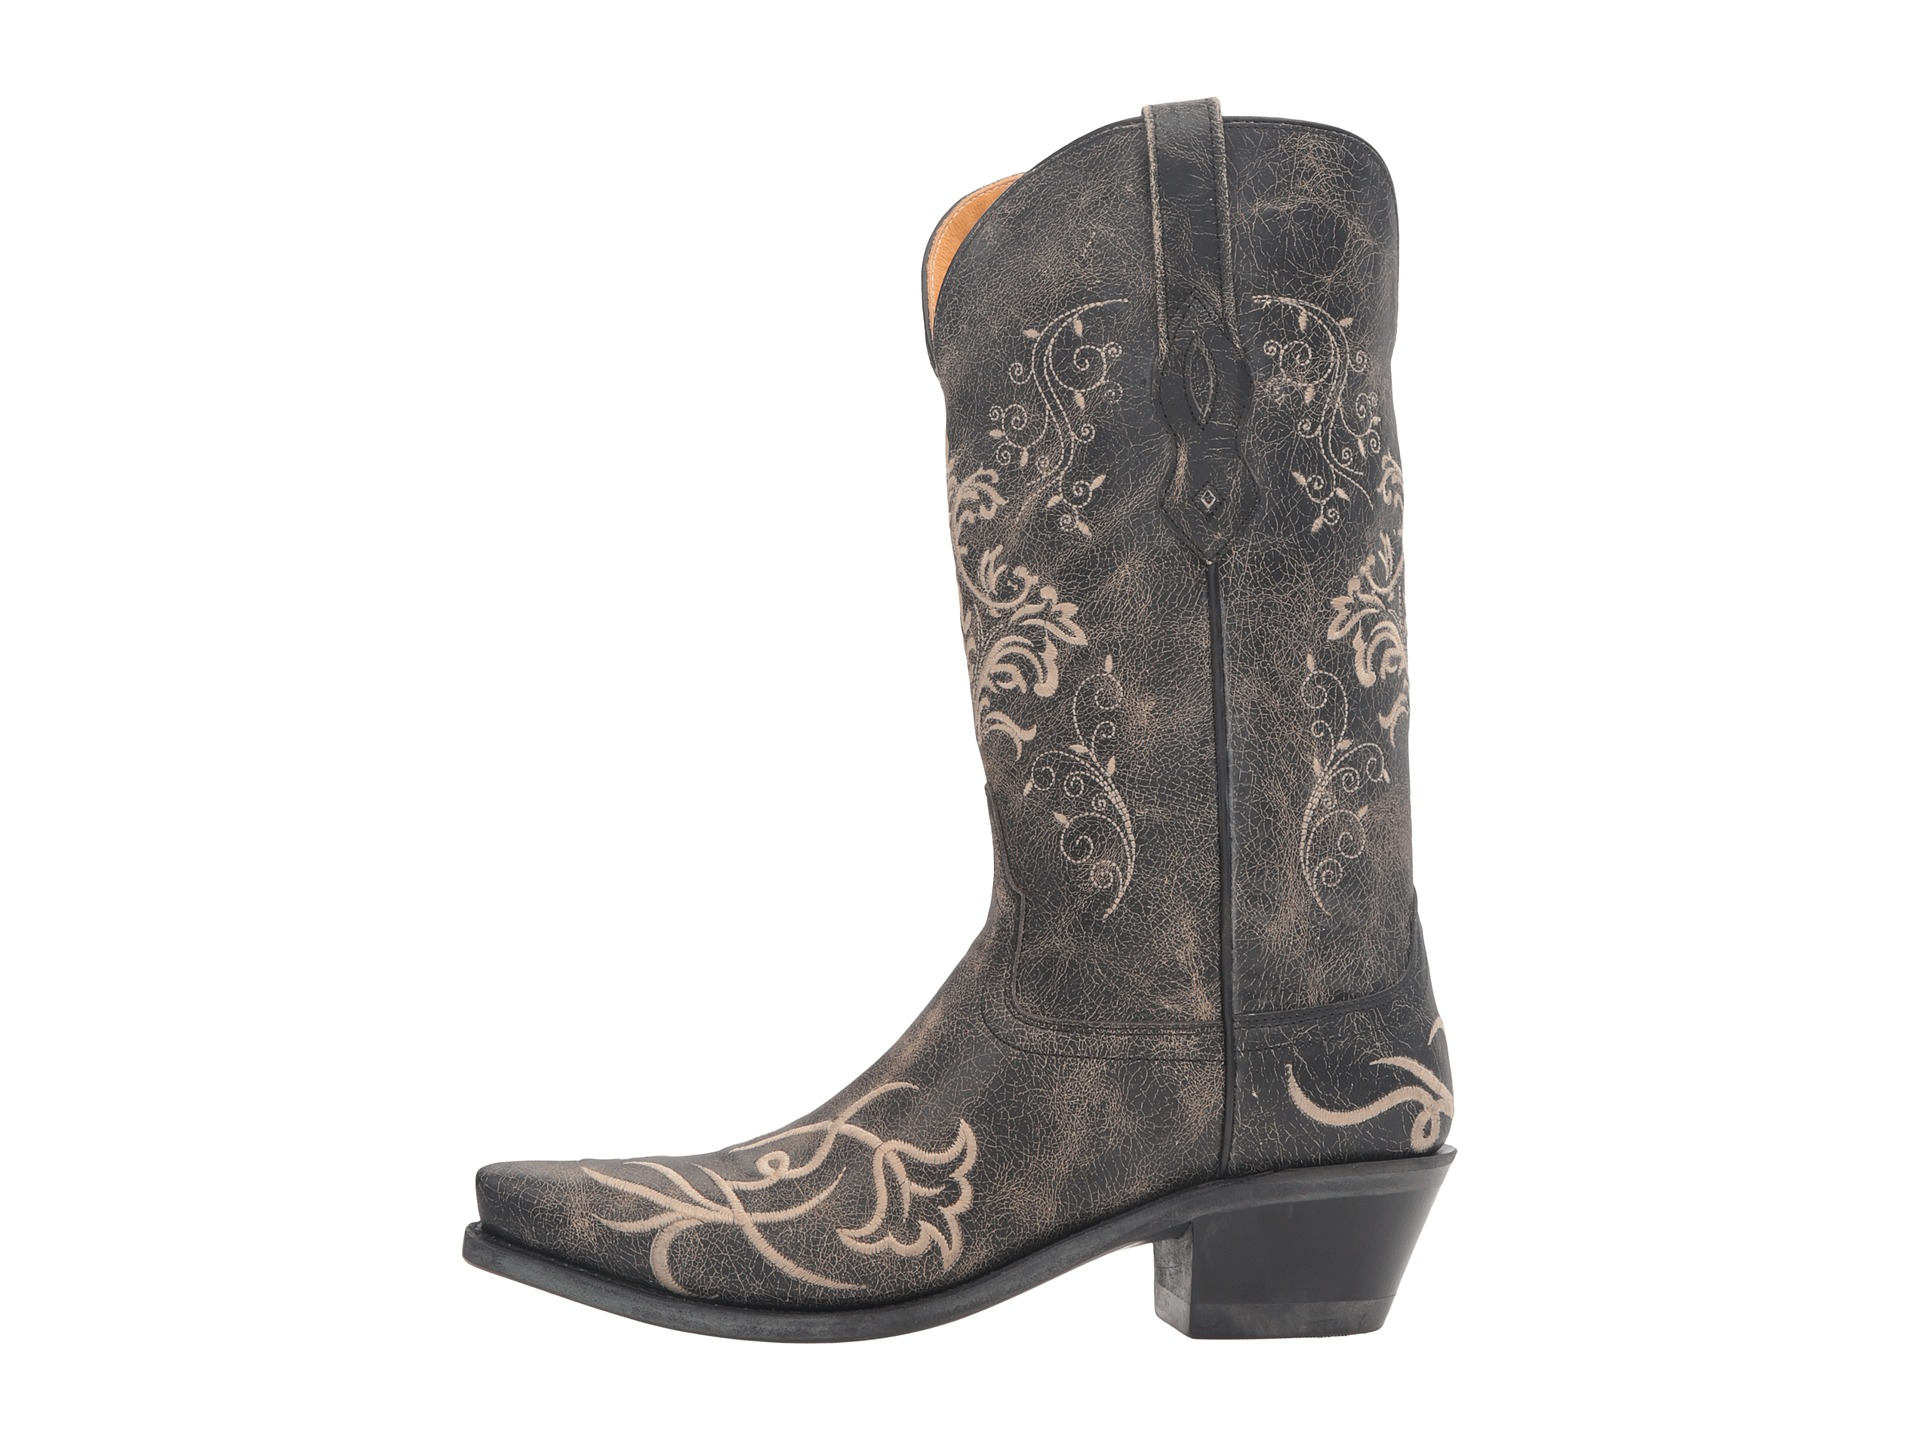 west boots lf1587 at zappos